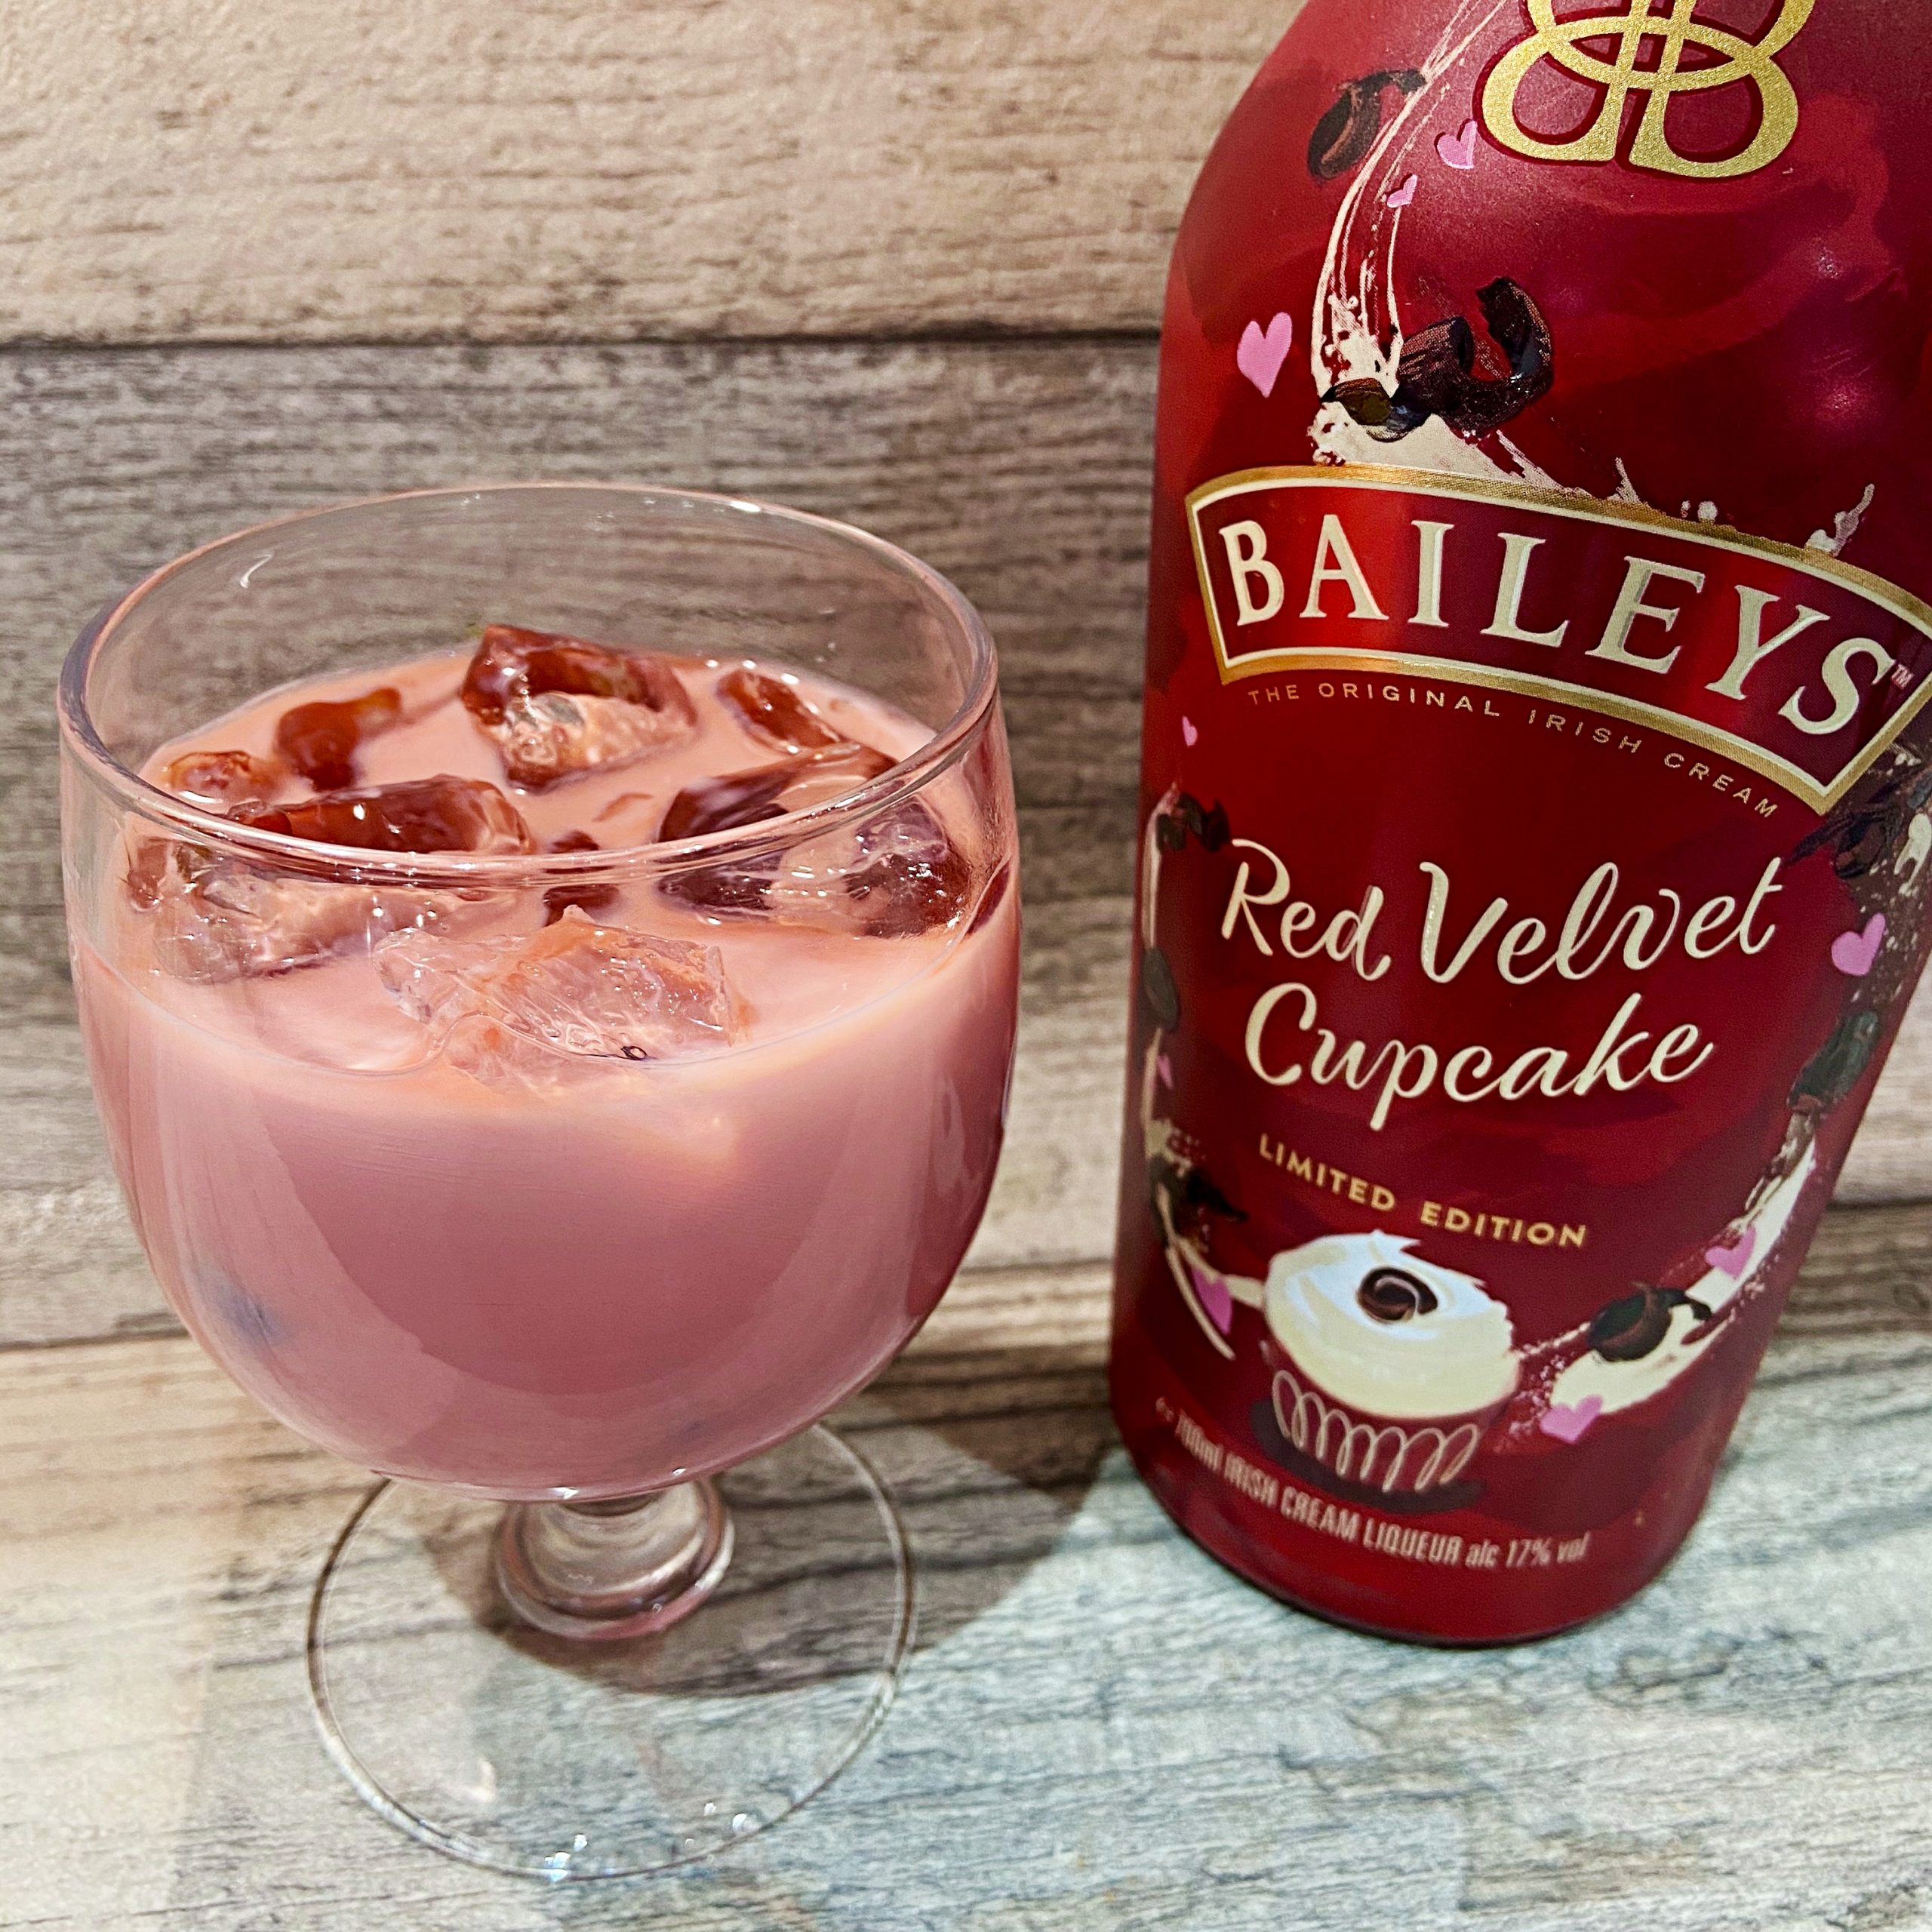 Red Velvet Cupcake Baileys Review